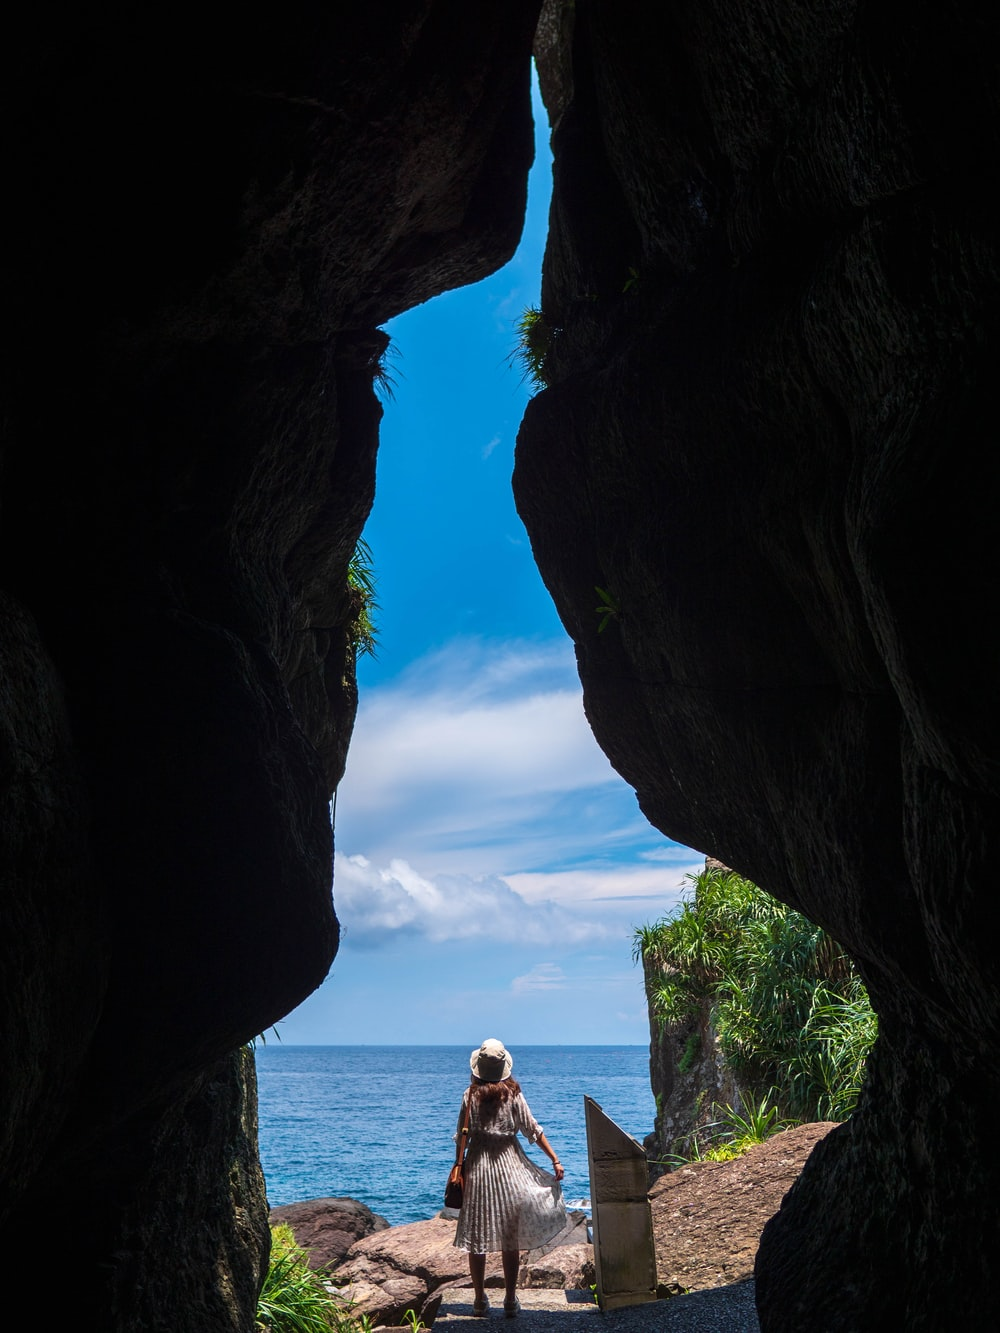 woman in white shirt sitting on rock formation during daytime